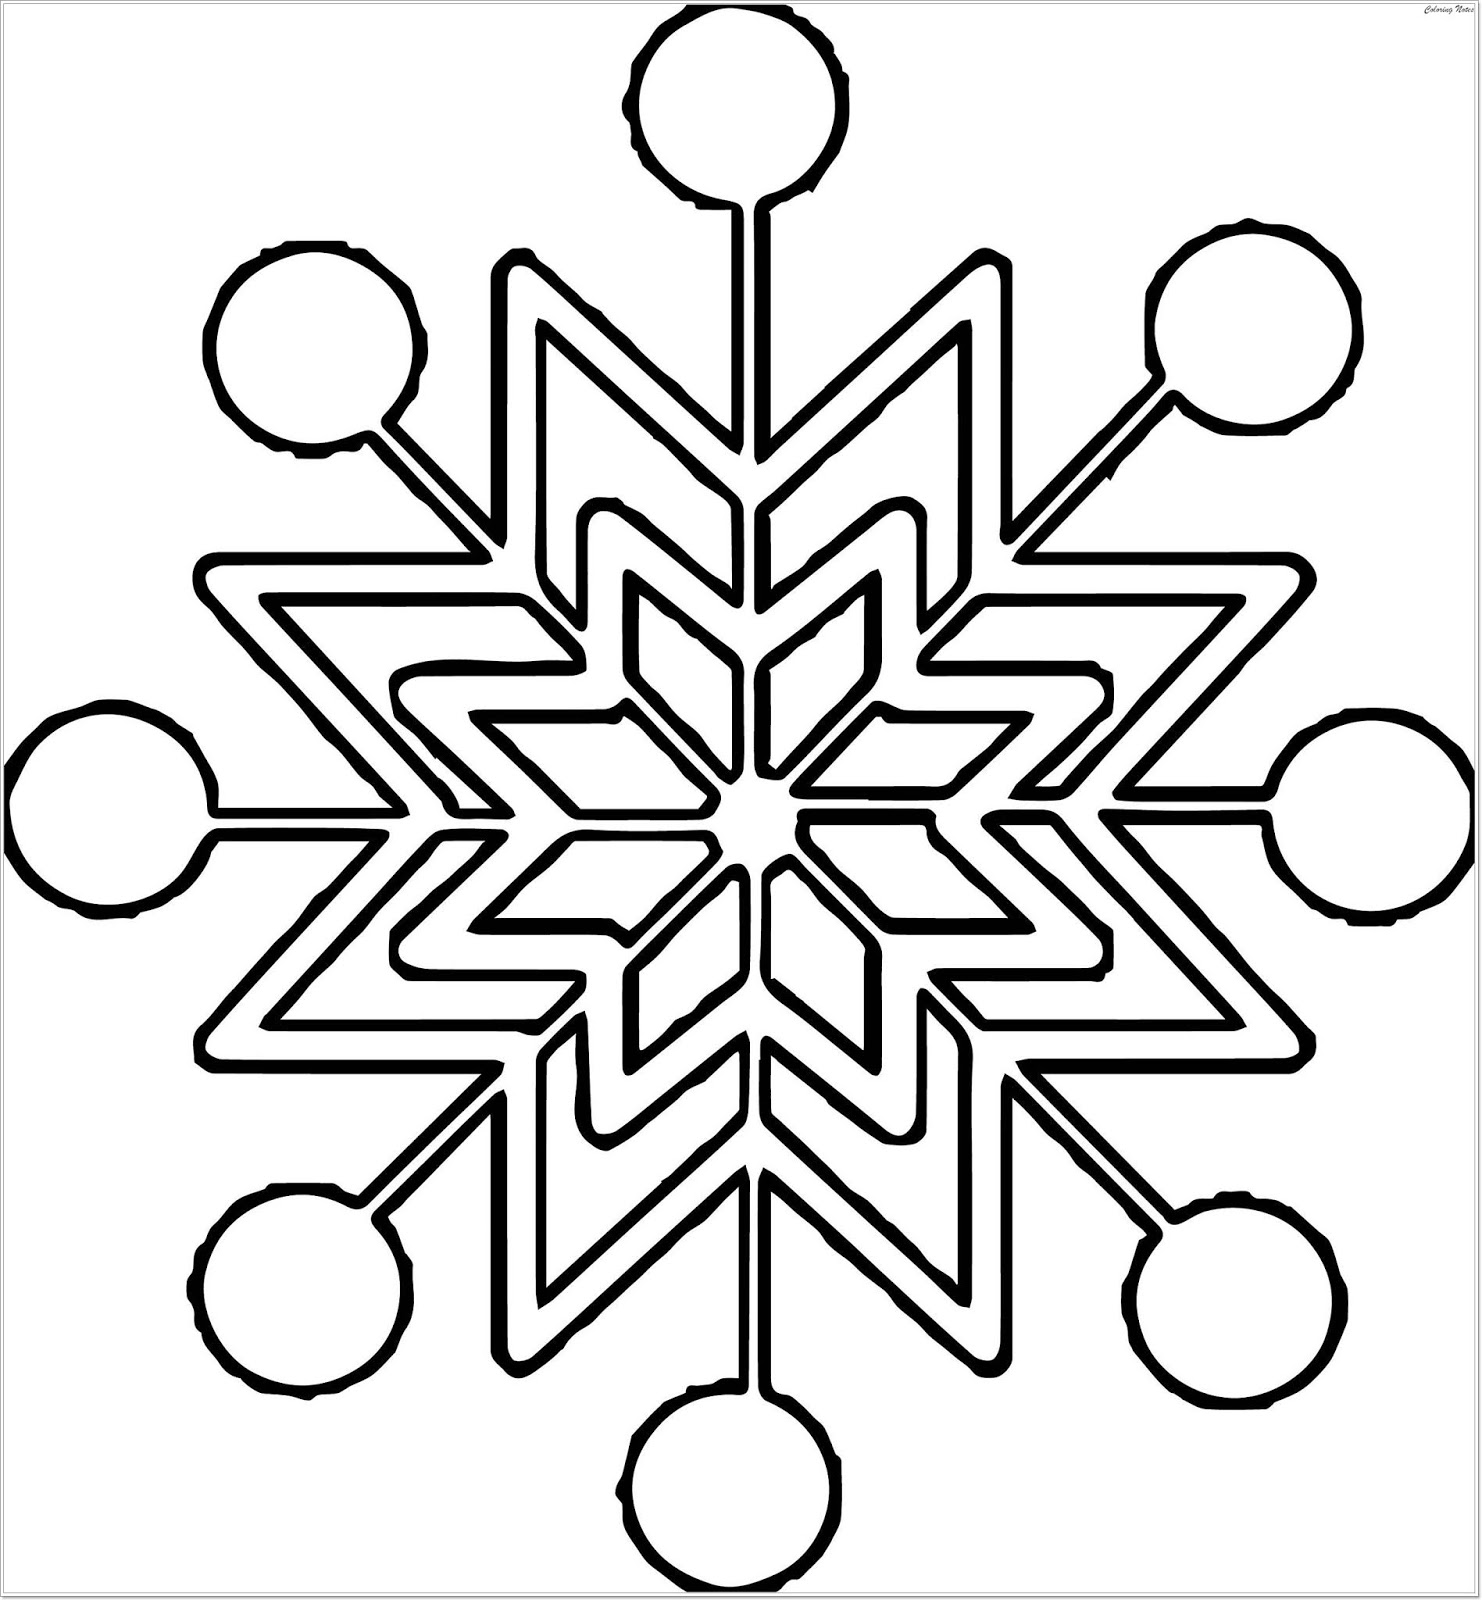 snowflake coloring page easy snowflake coloring pages at getdrawings free download coloring snowflake page